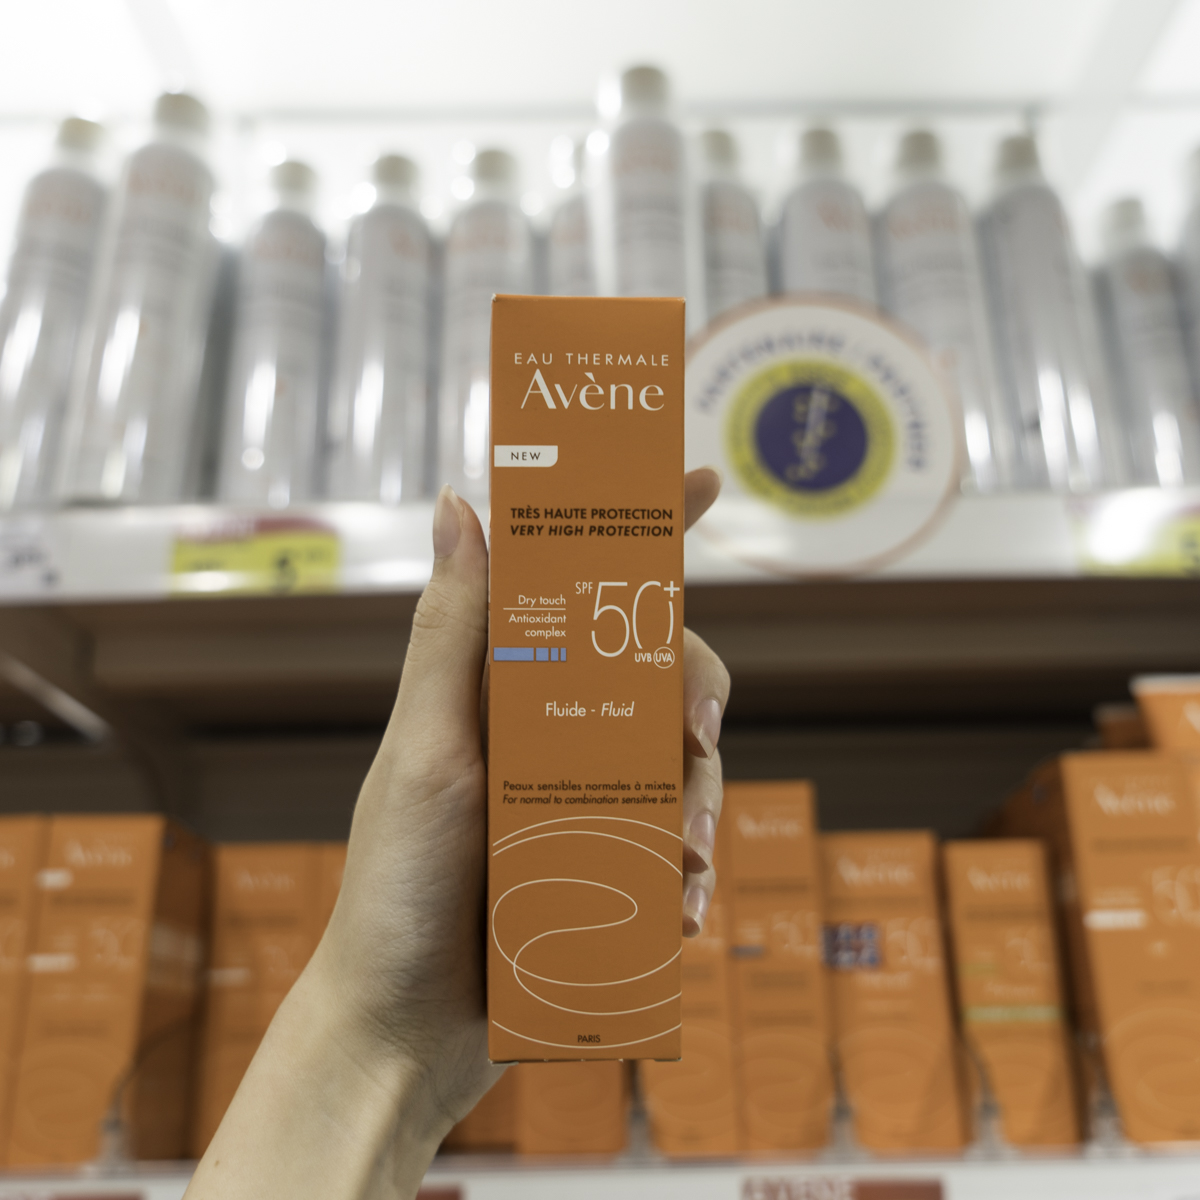 Where to buy Avene